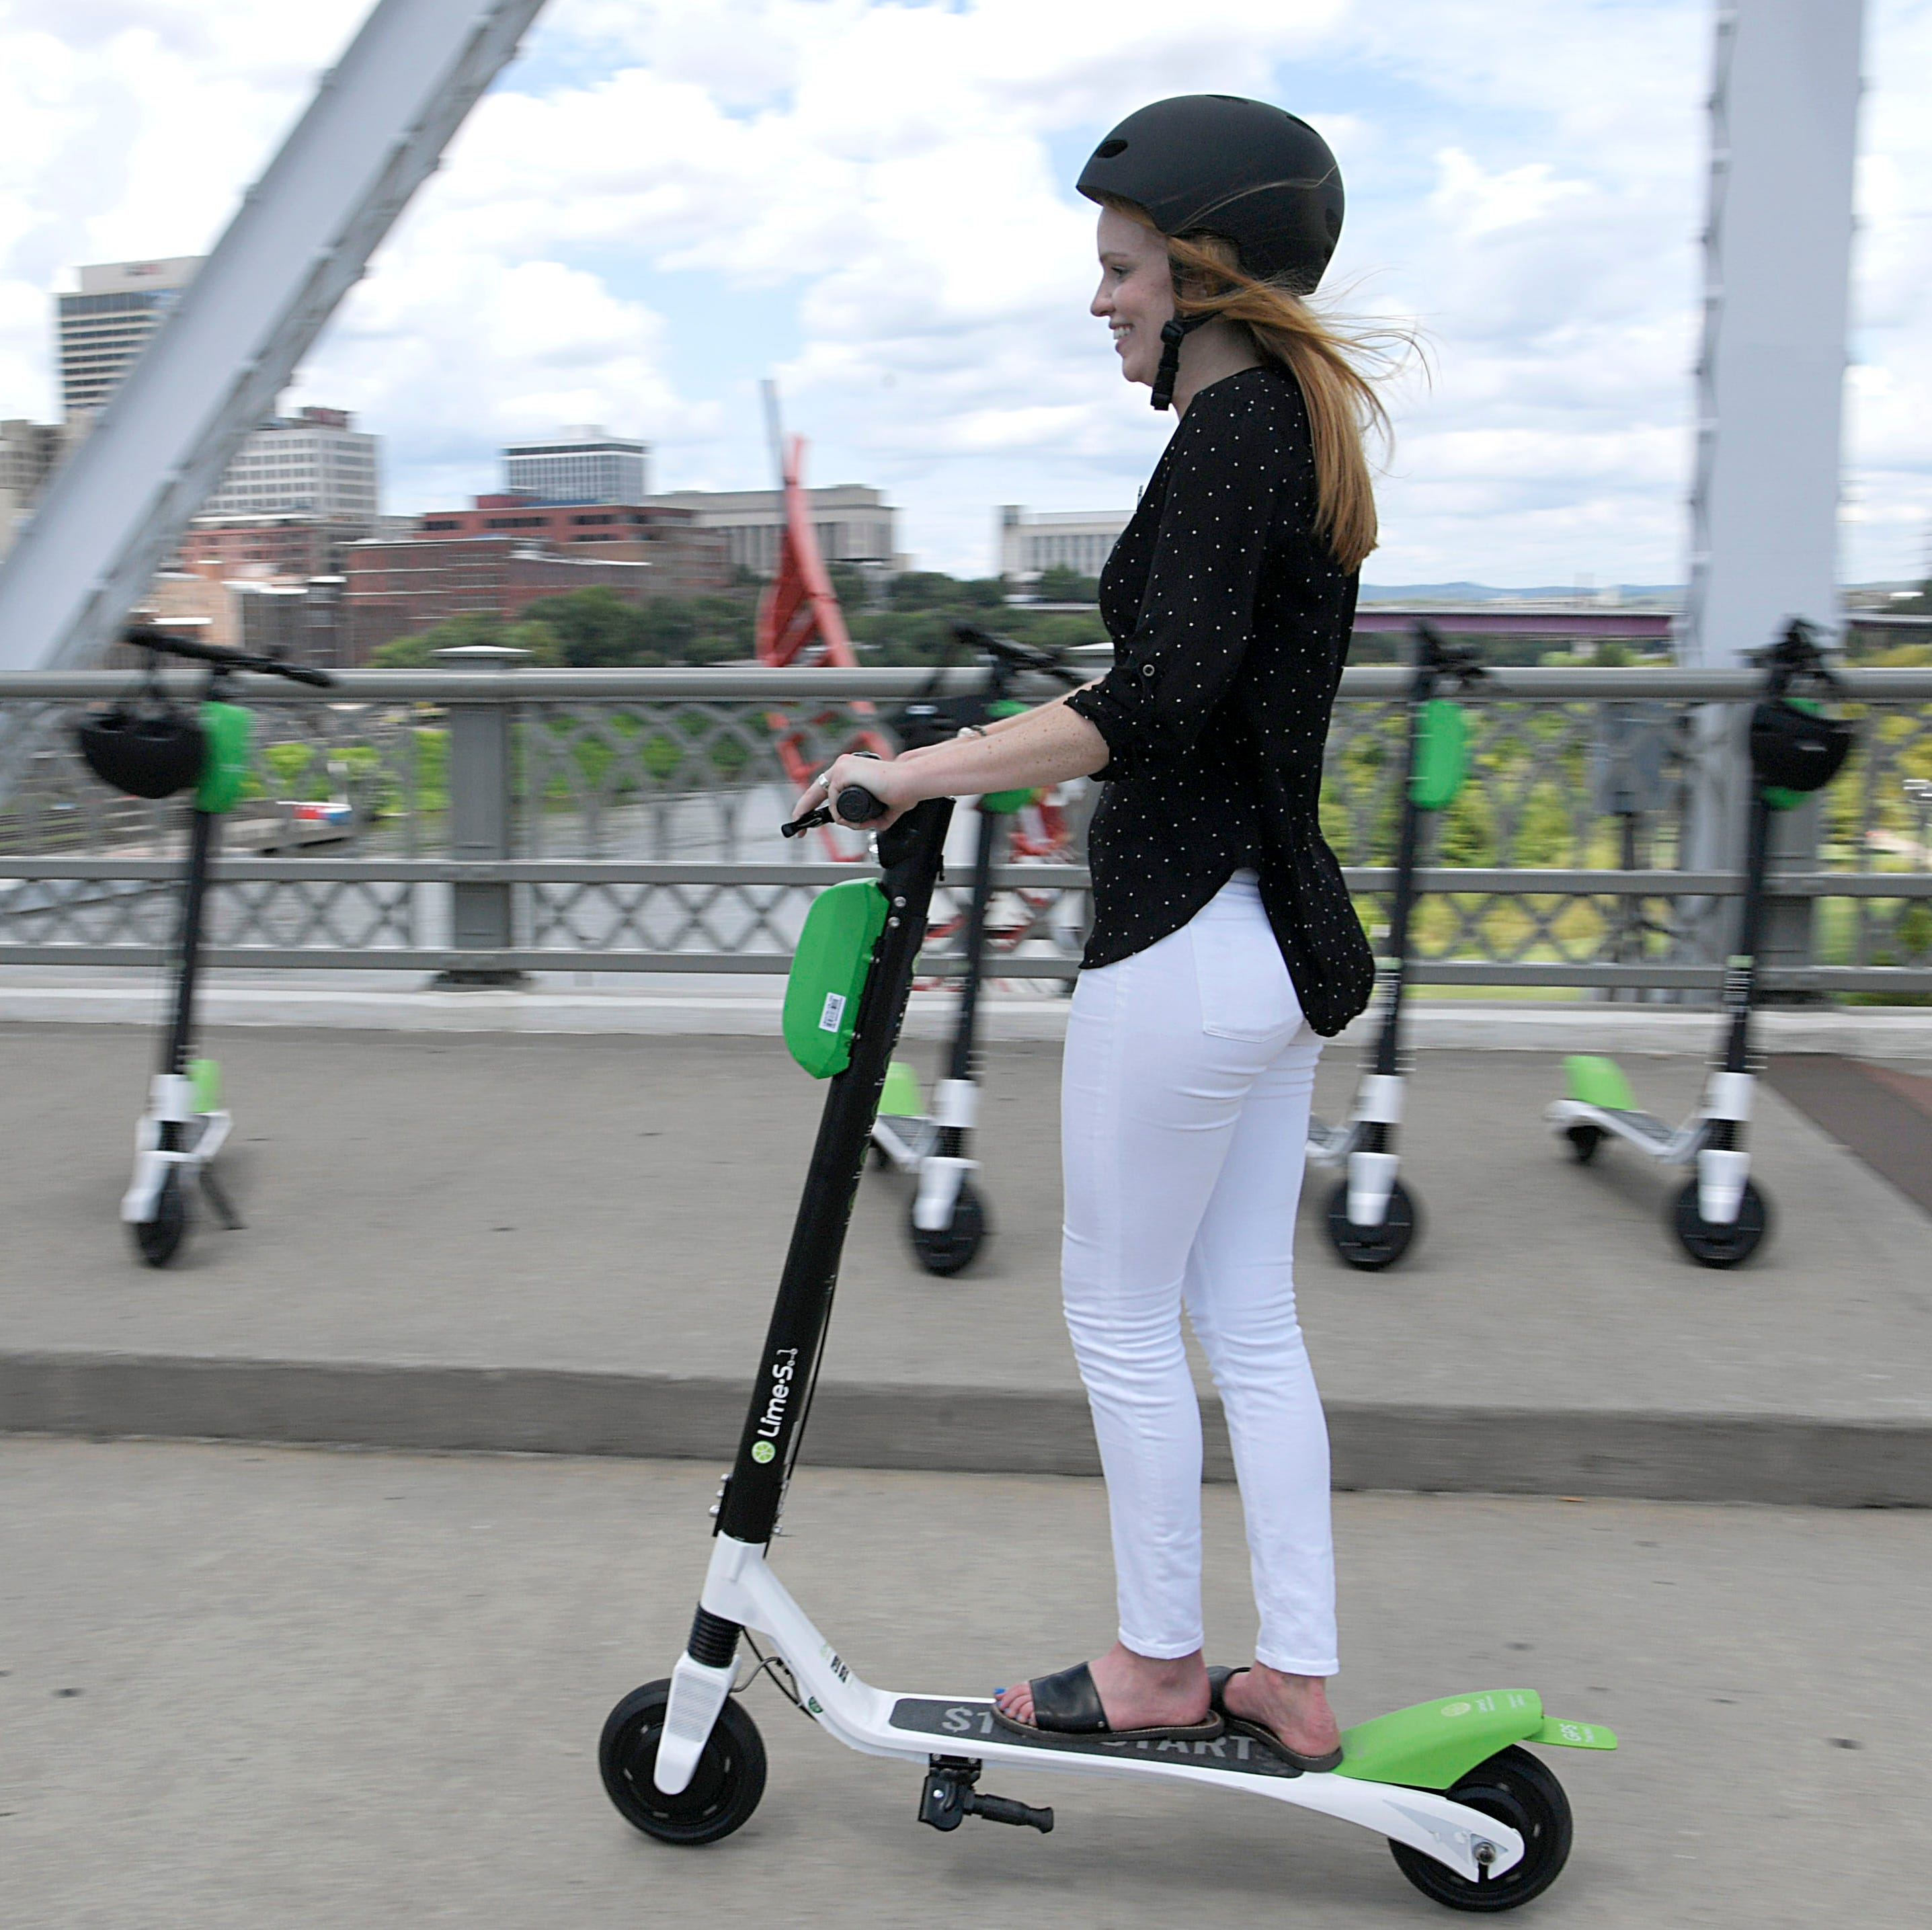 Electric scooters have come to Knoxville. Here's what you need to know.